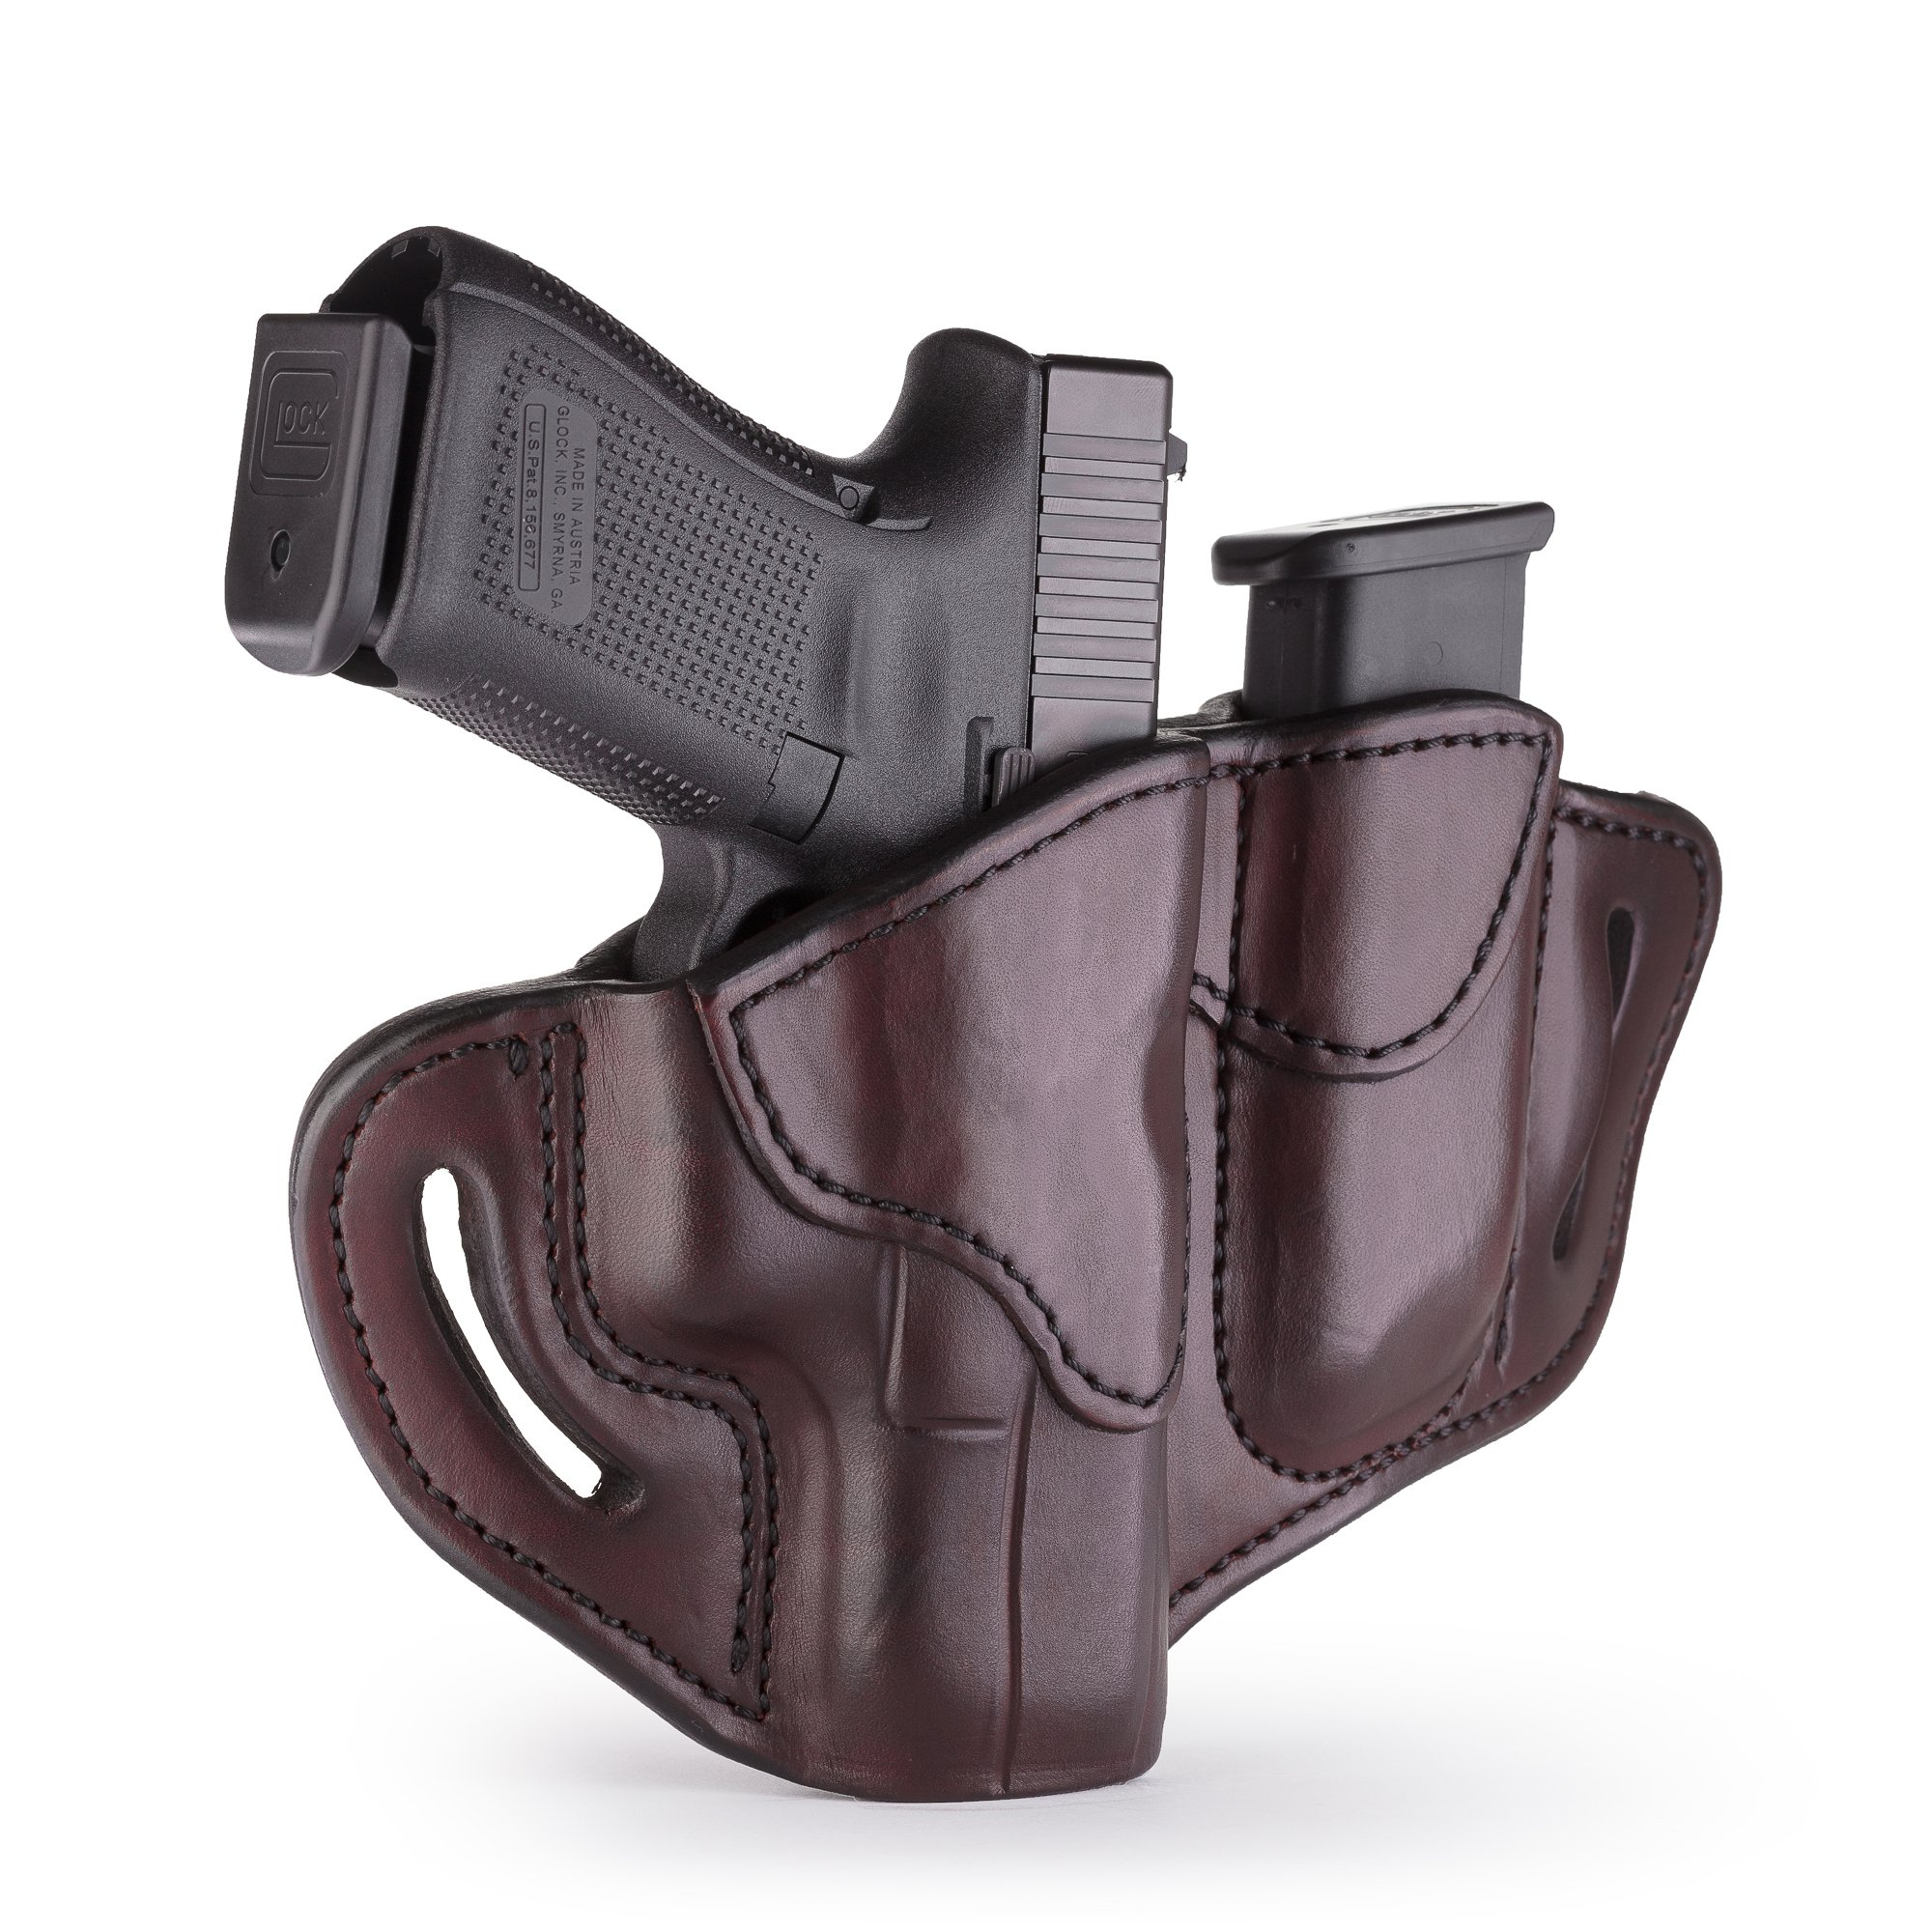 1791 GUNLEATHER Glock 19 Holster and Mag Pouch Combo - Right Hand OWB G19 Leather Holster for Belts - Fits Glock 19, 23, 26, 27, H&K VP40 and Springfield XDS (BH2.1)